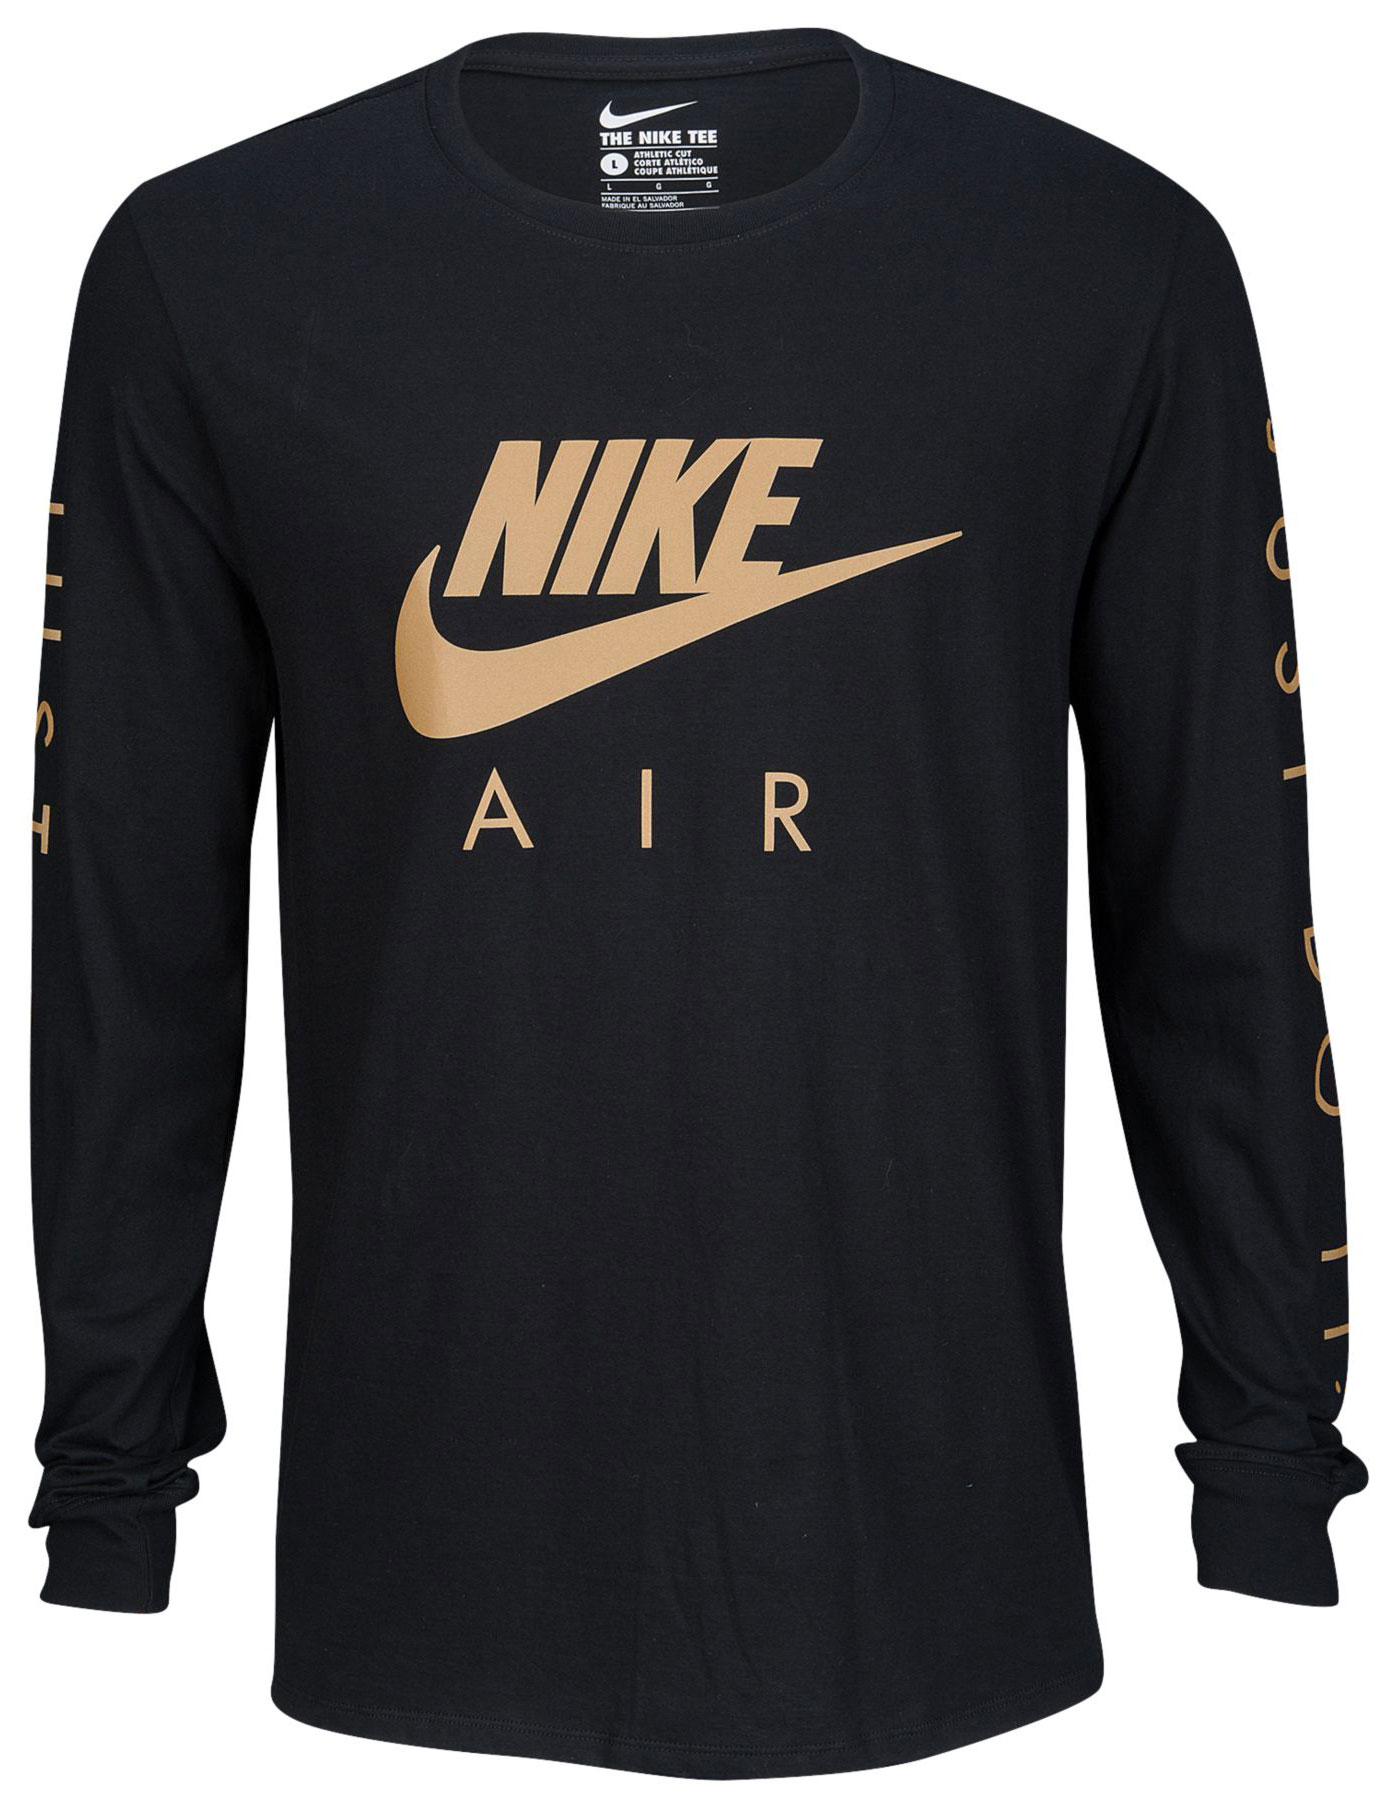 nike-foamposite-metallic-gold-shirt-7